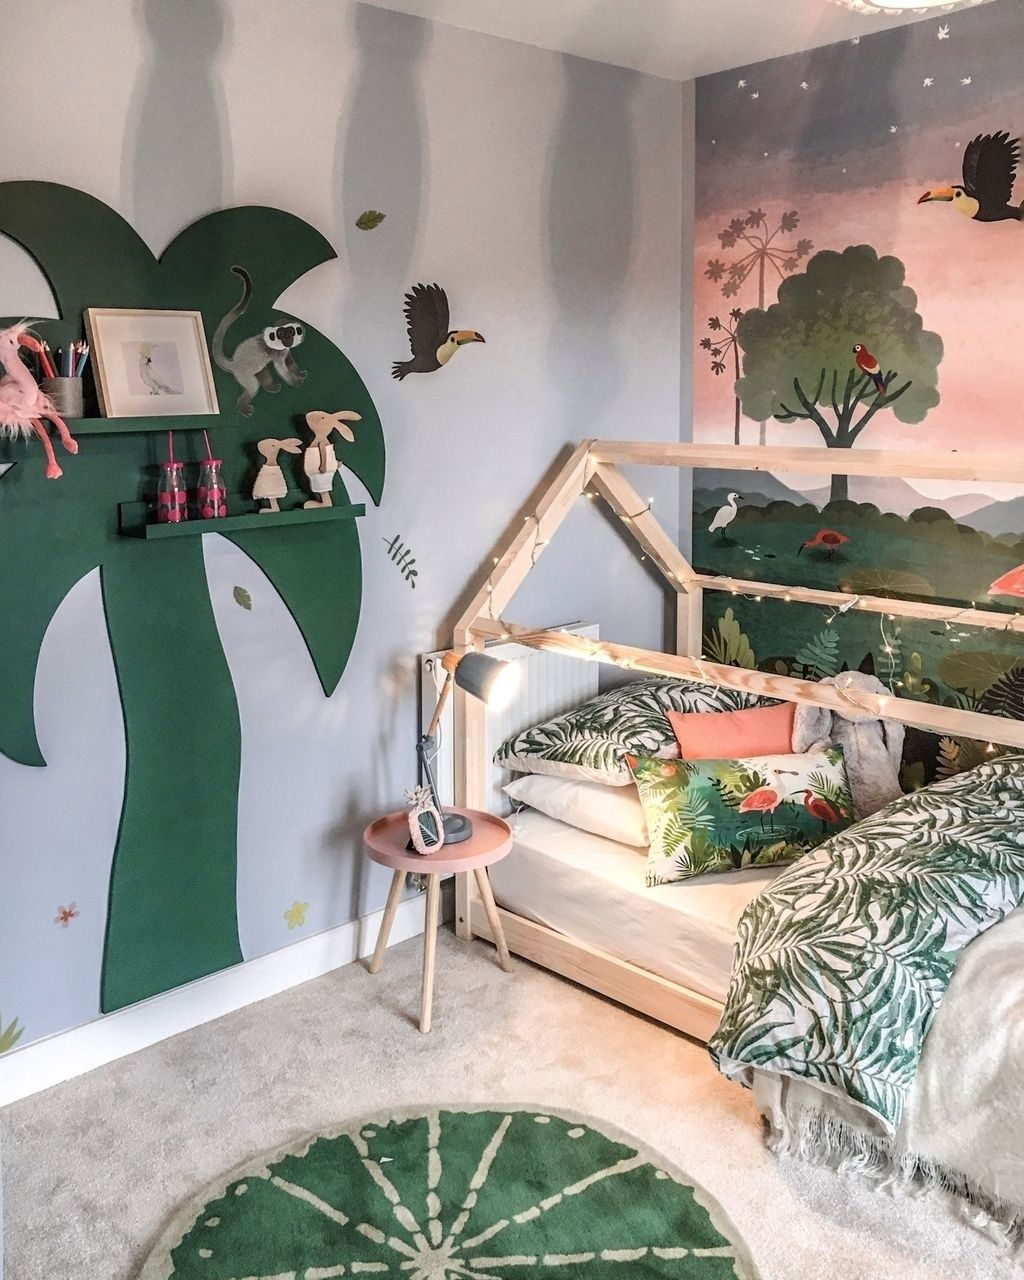 Pin On For The House Toddler jungle bedroom ideas